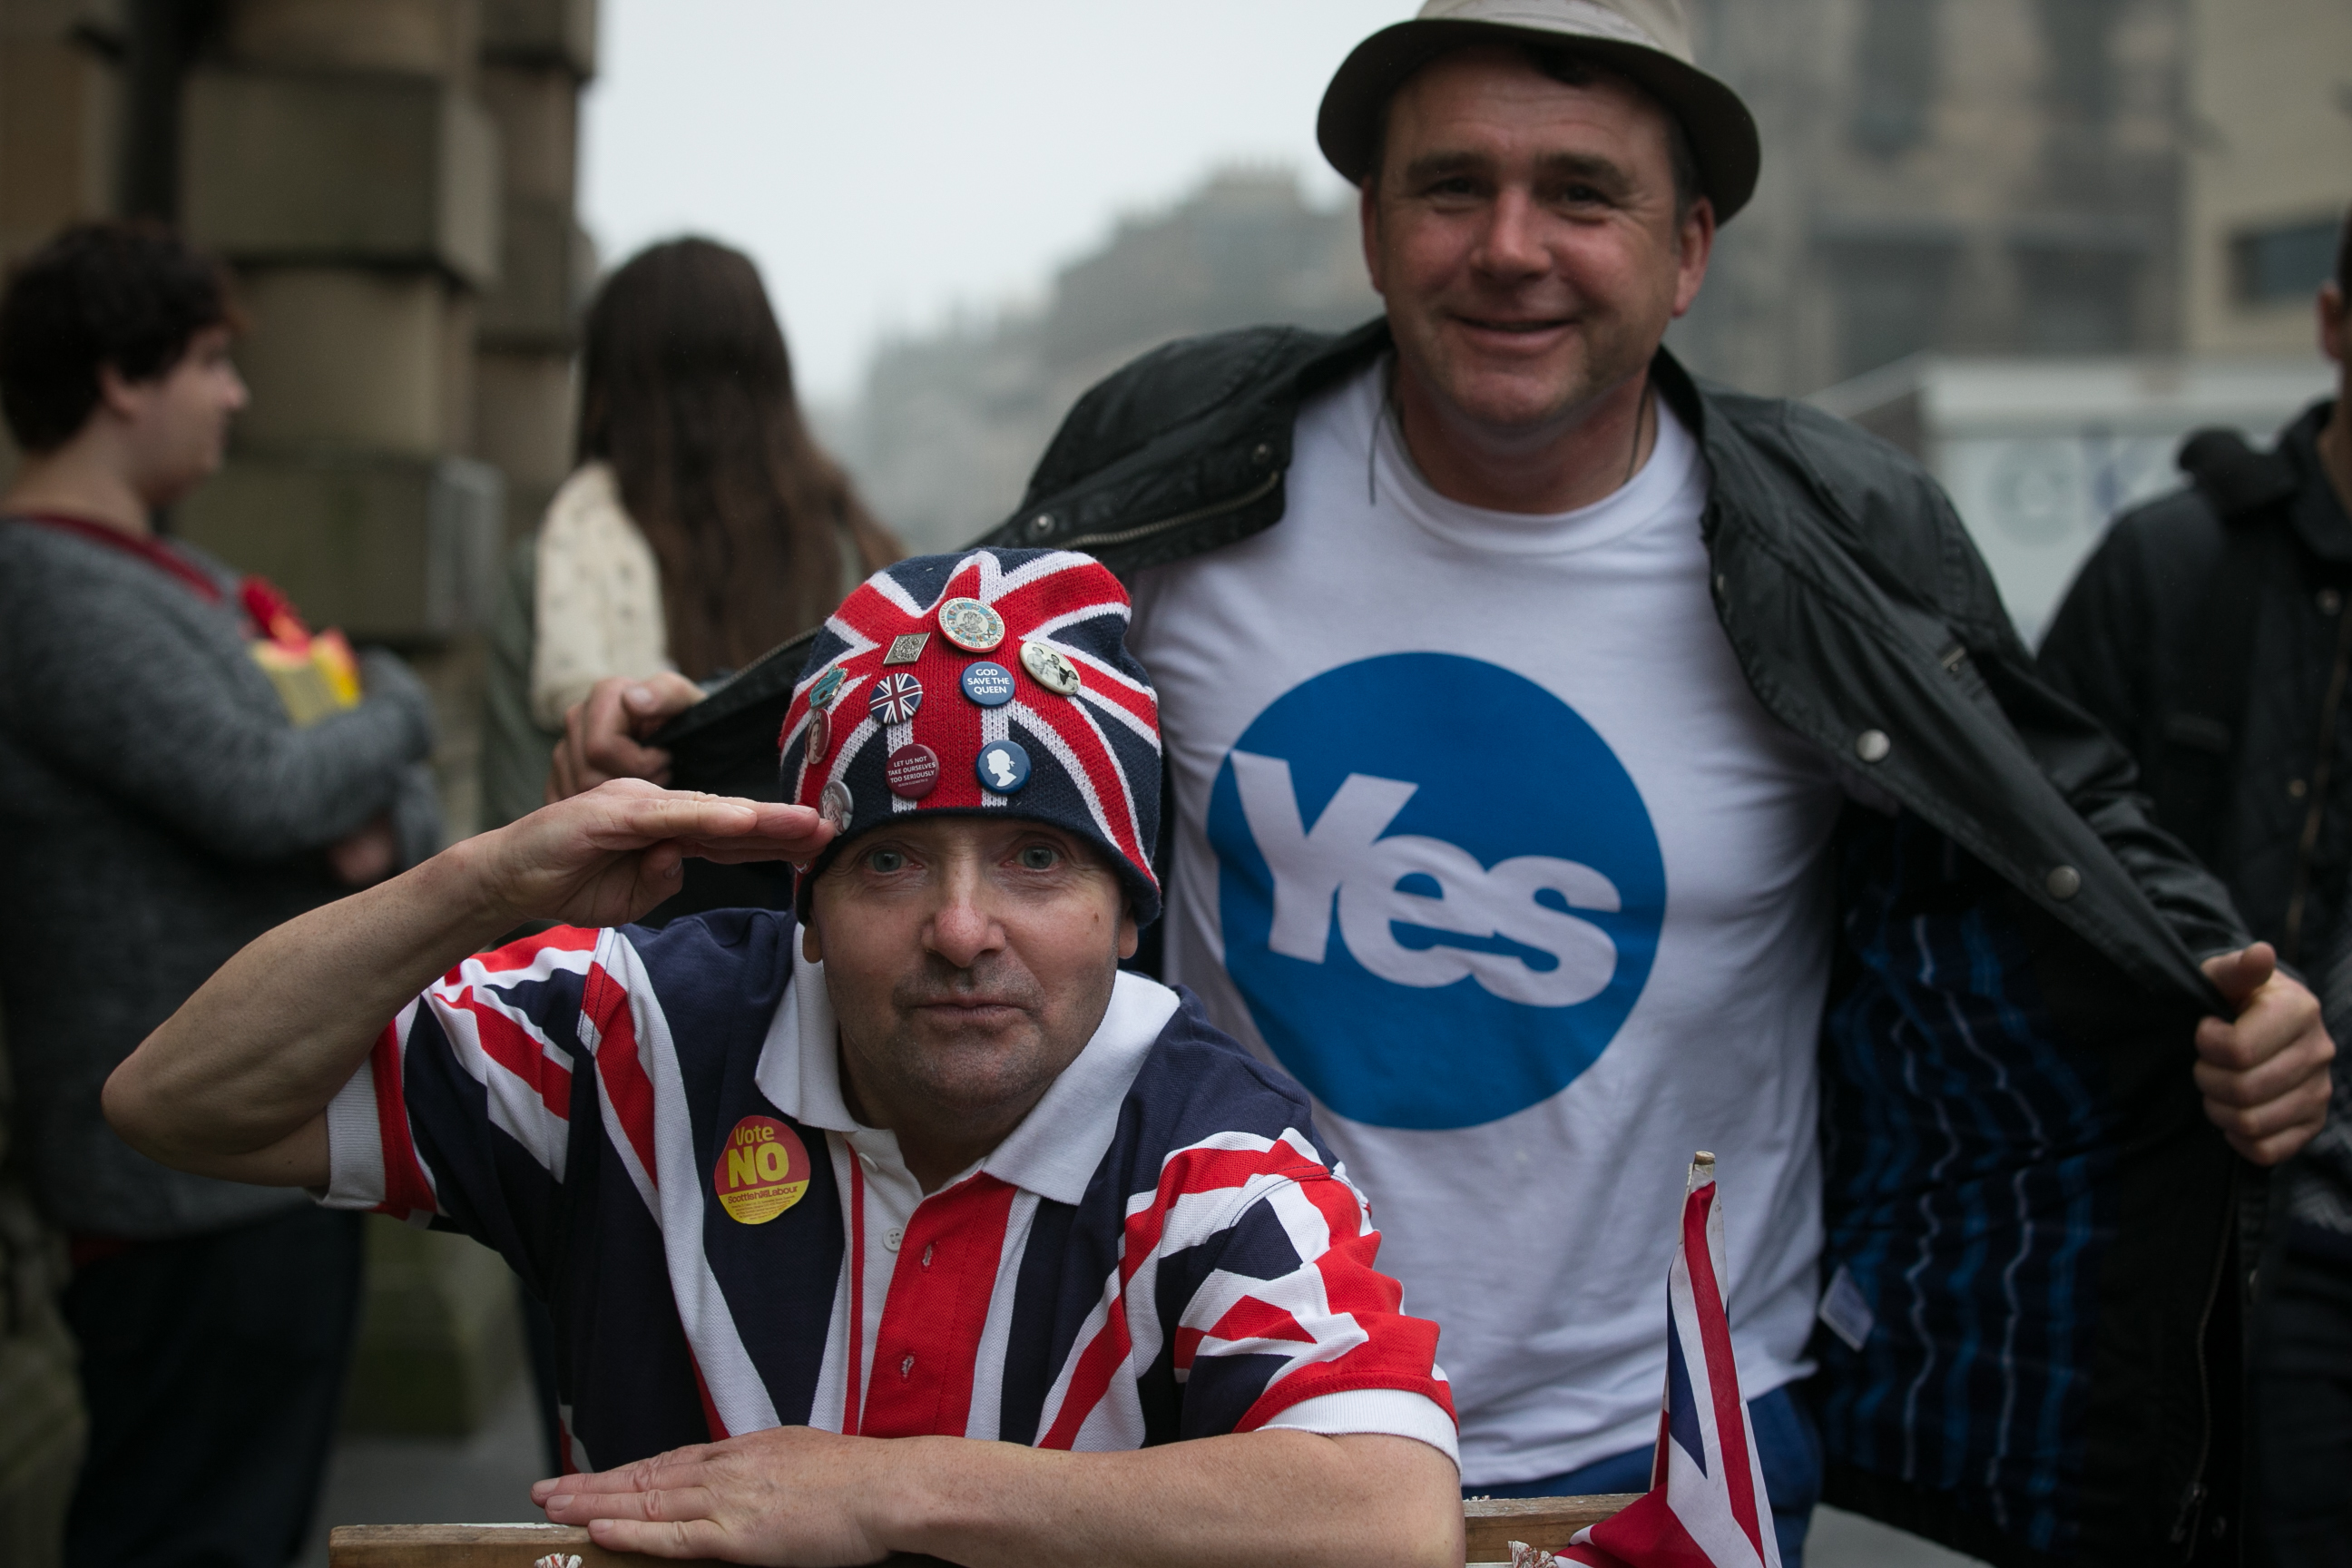 Voters agreeing to disagree at an Edinburgh polling station in September 2014 (Matt Cardy/Getty Images)